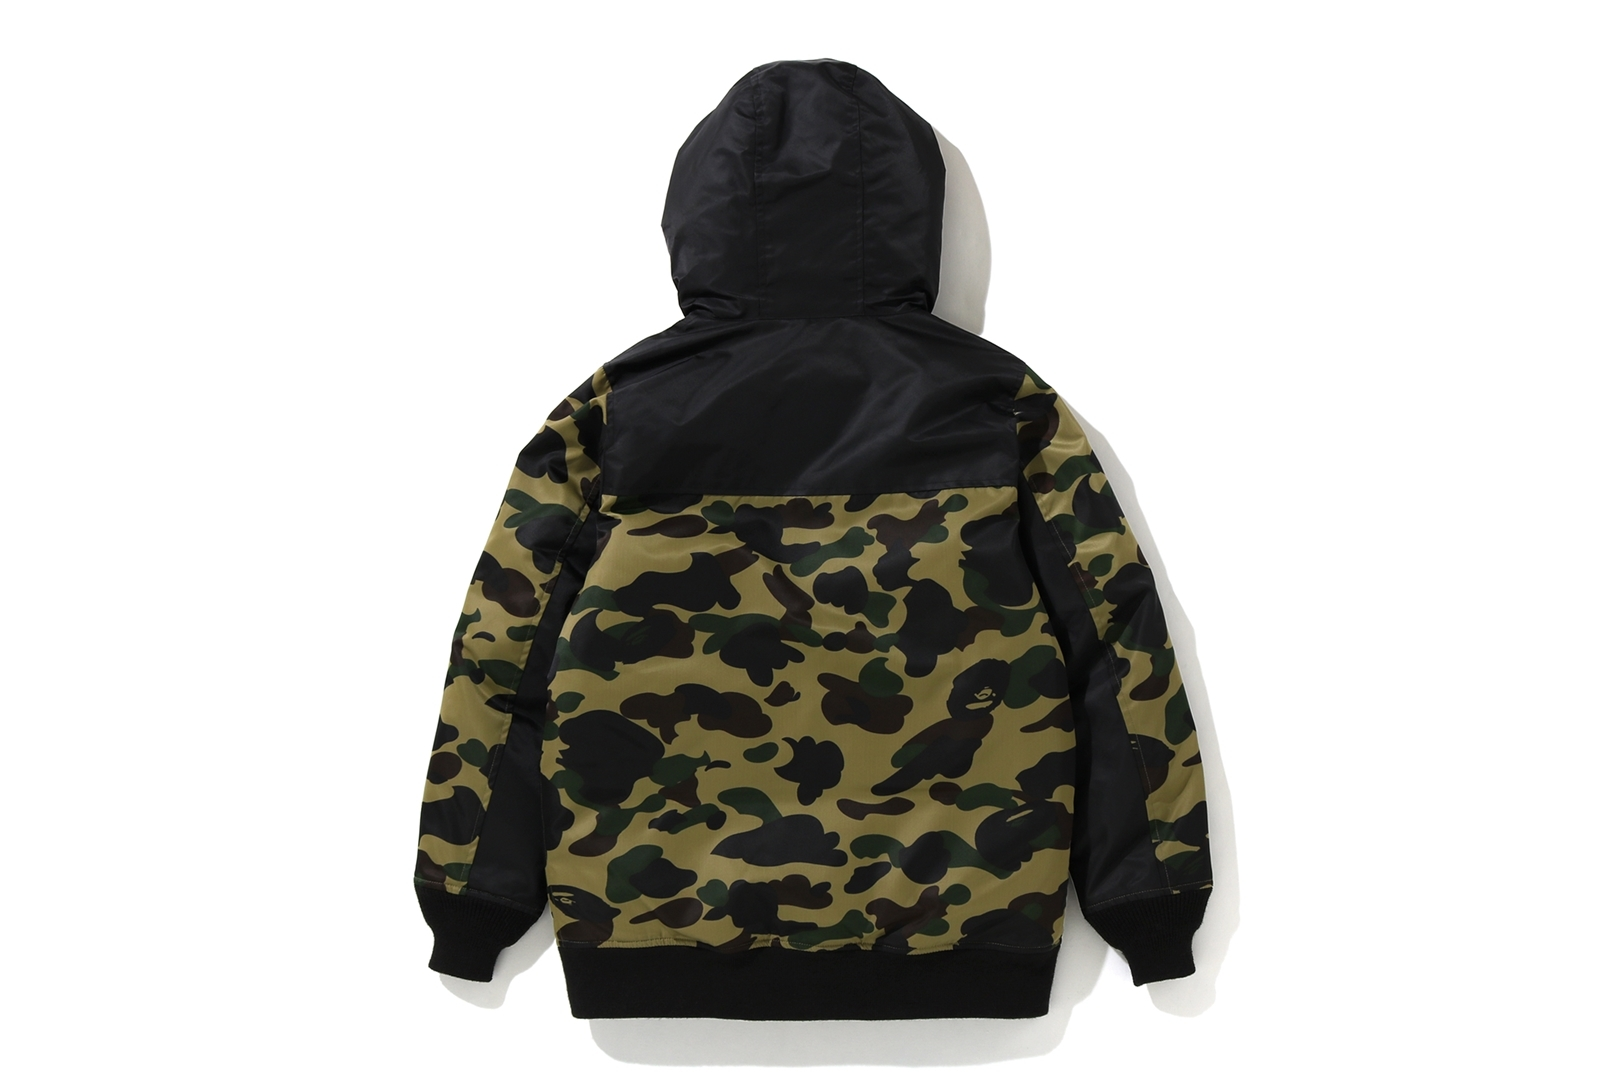 1ST CAMO OVERSIZED HOODIE DOWN JACKET_a0174495_13240569.jpg